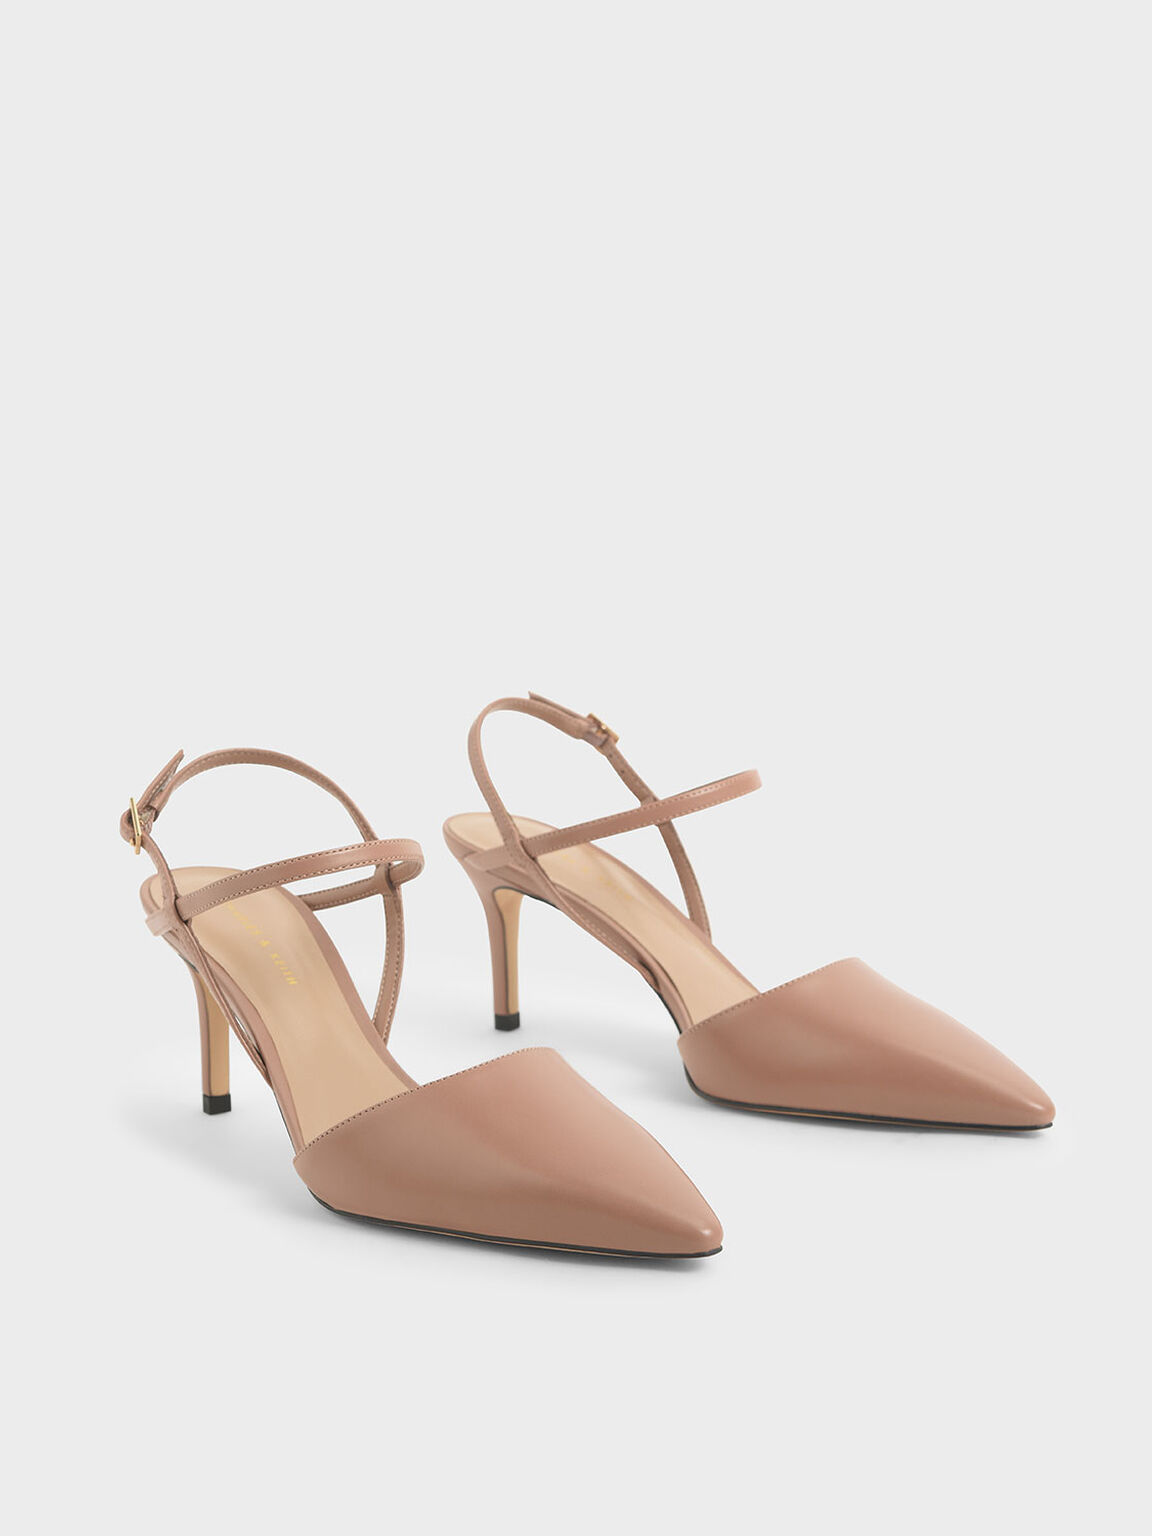 Ankle Strap Stiletto Pumps, Nude, hi-res